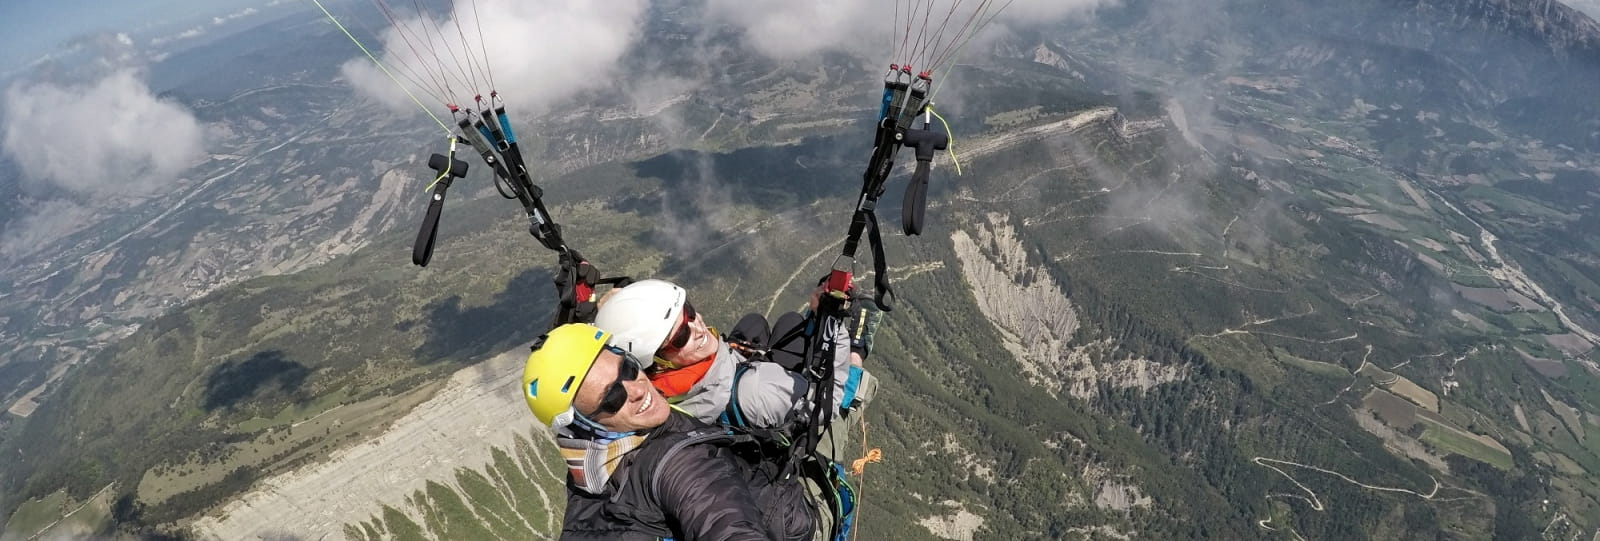 Vol en parapente avec Air Element